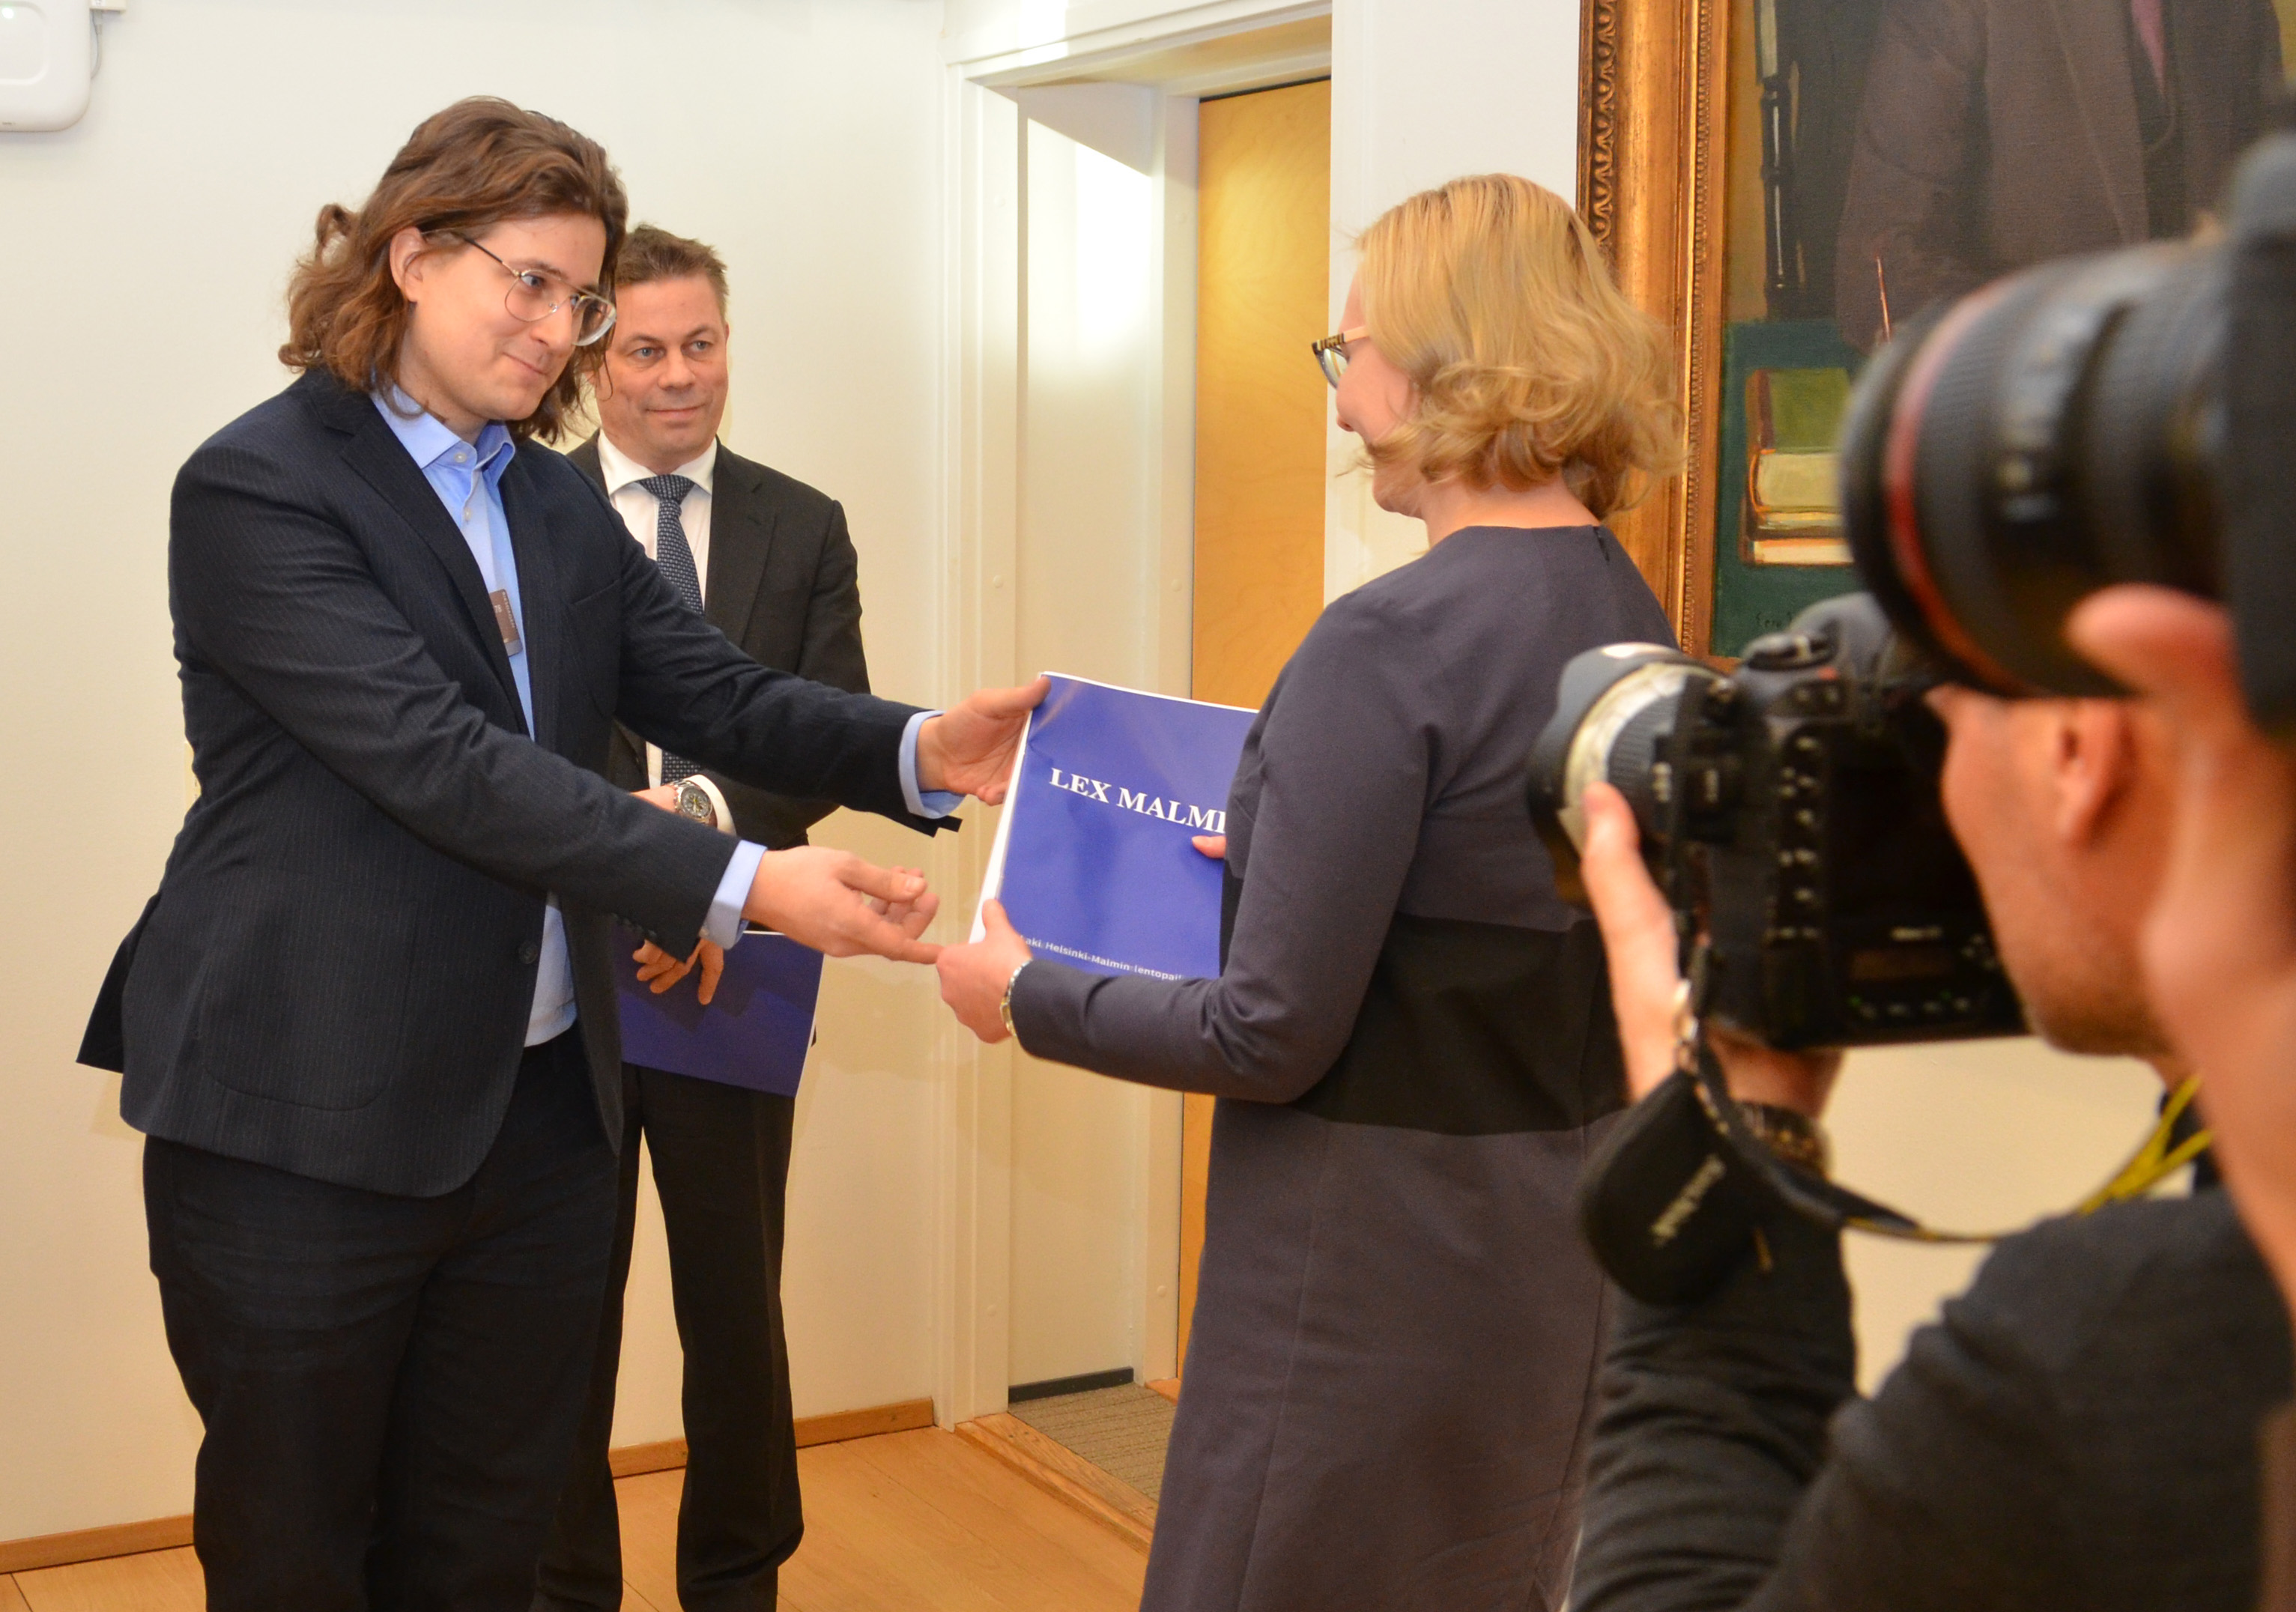 The initiator of Lex Malmi, Mr. Kim Korkkula presents the citizens' law initiative to the Speaker of Parliament Marja Lohela. Behind him is Chairman of Friends of Malmi Airport, Mr. Timo Hyvönen. Photo: Raine Haikarainen / Friends of Malmi Airport